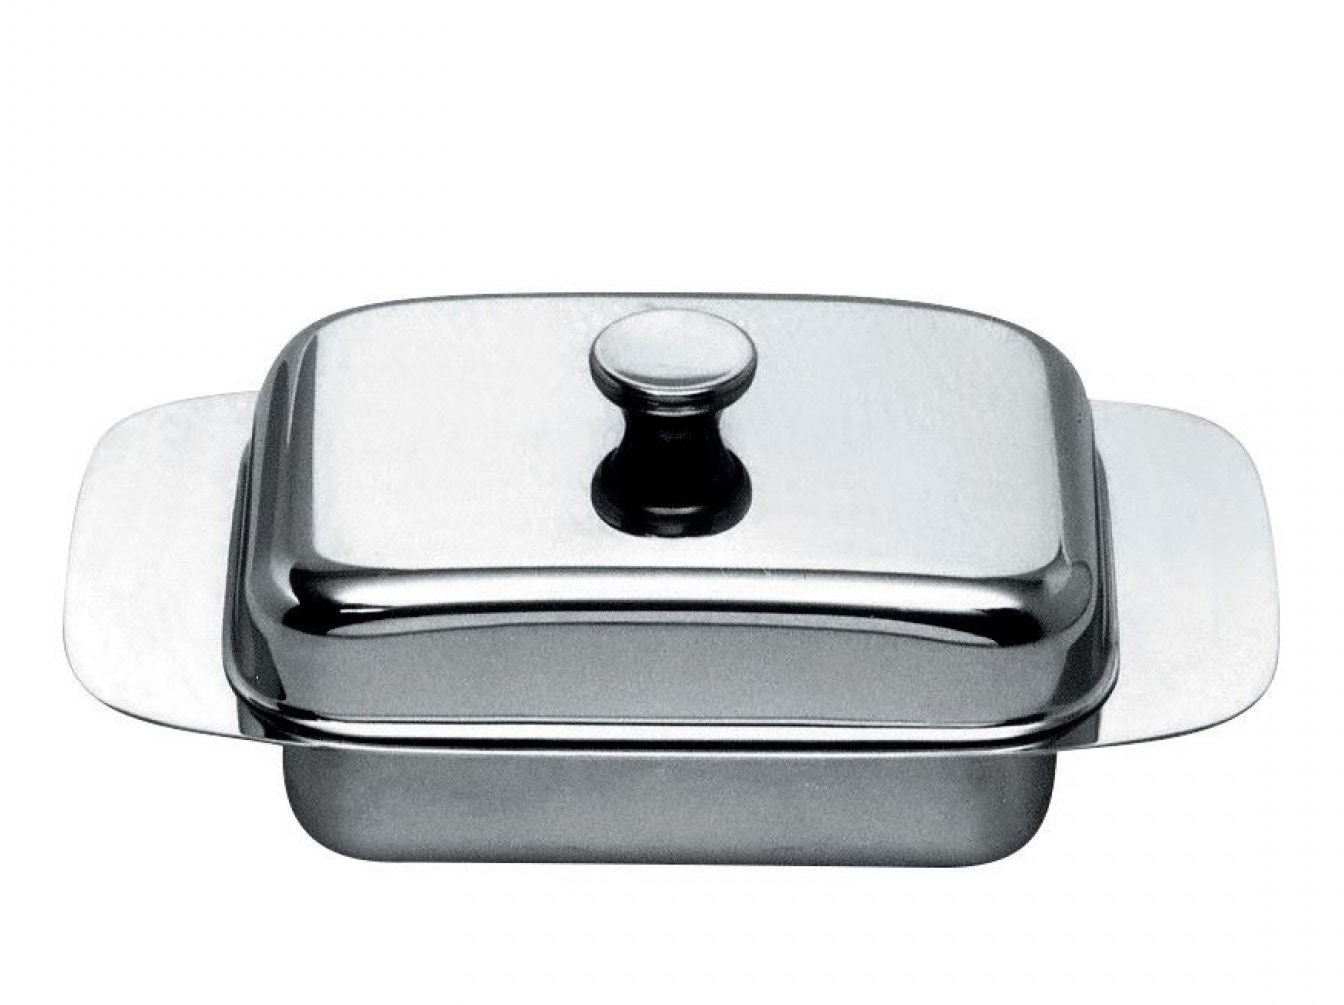 Alessi 137 Butter Dish